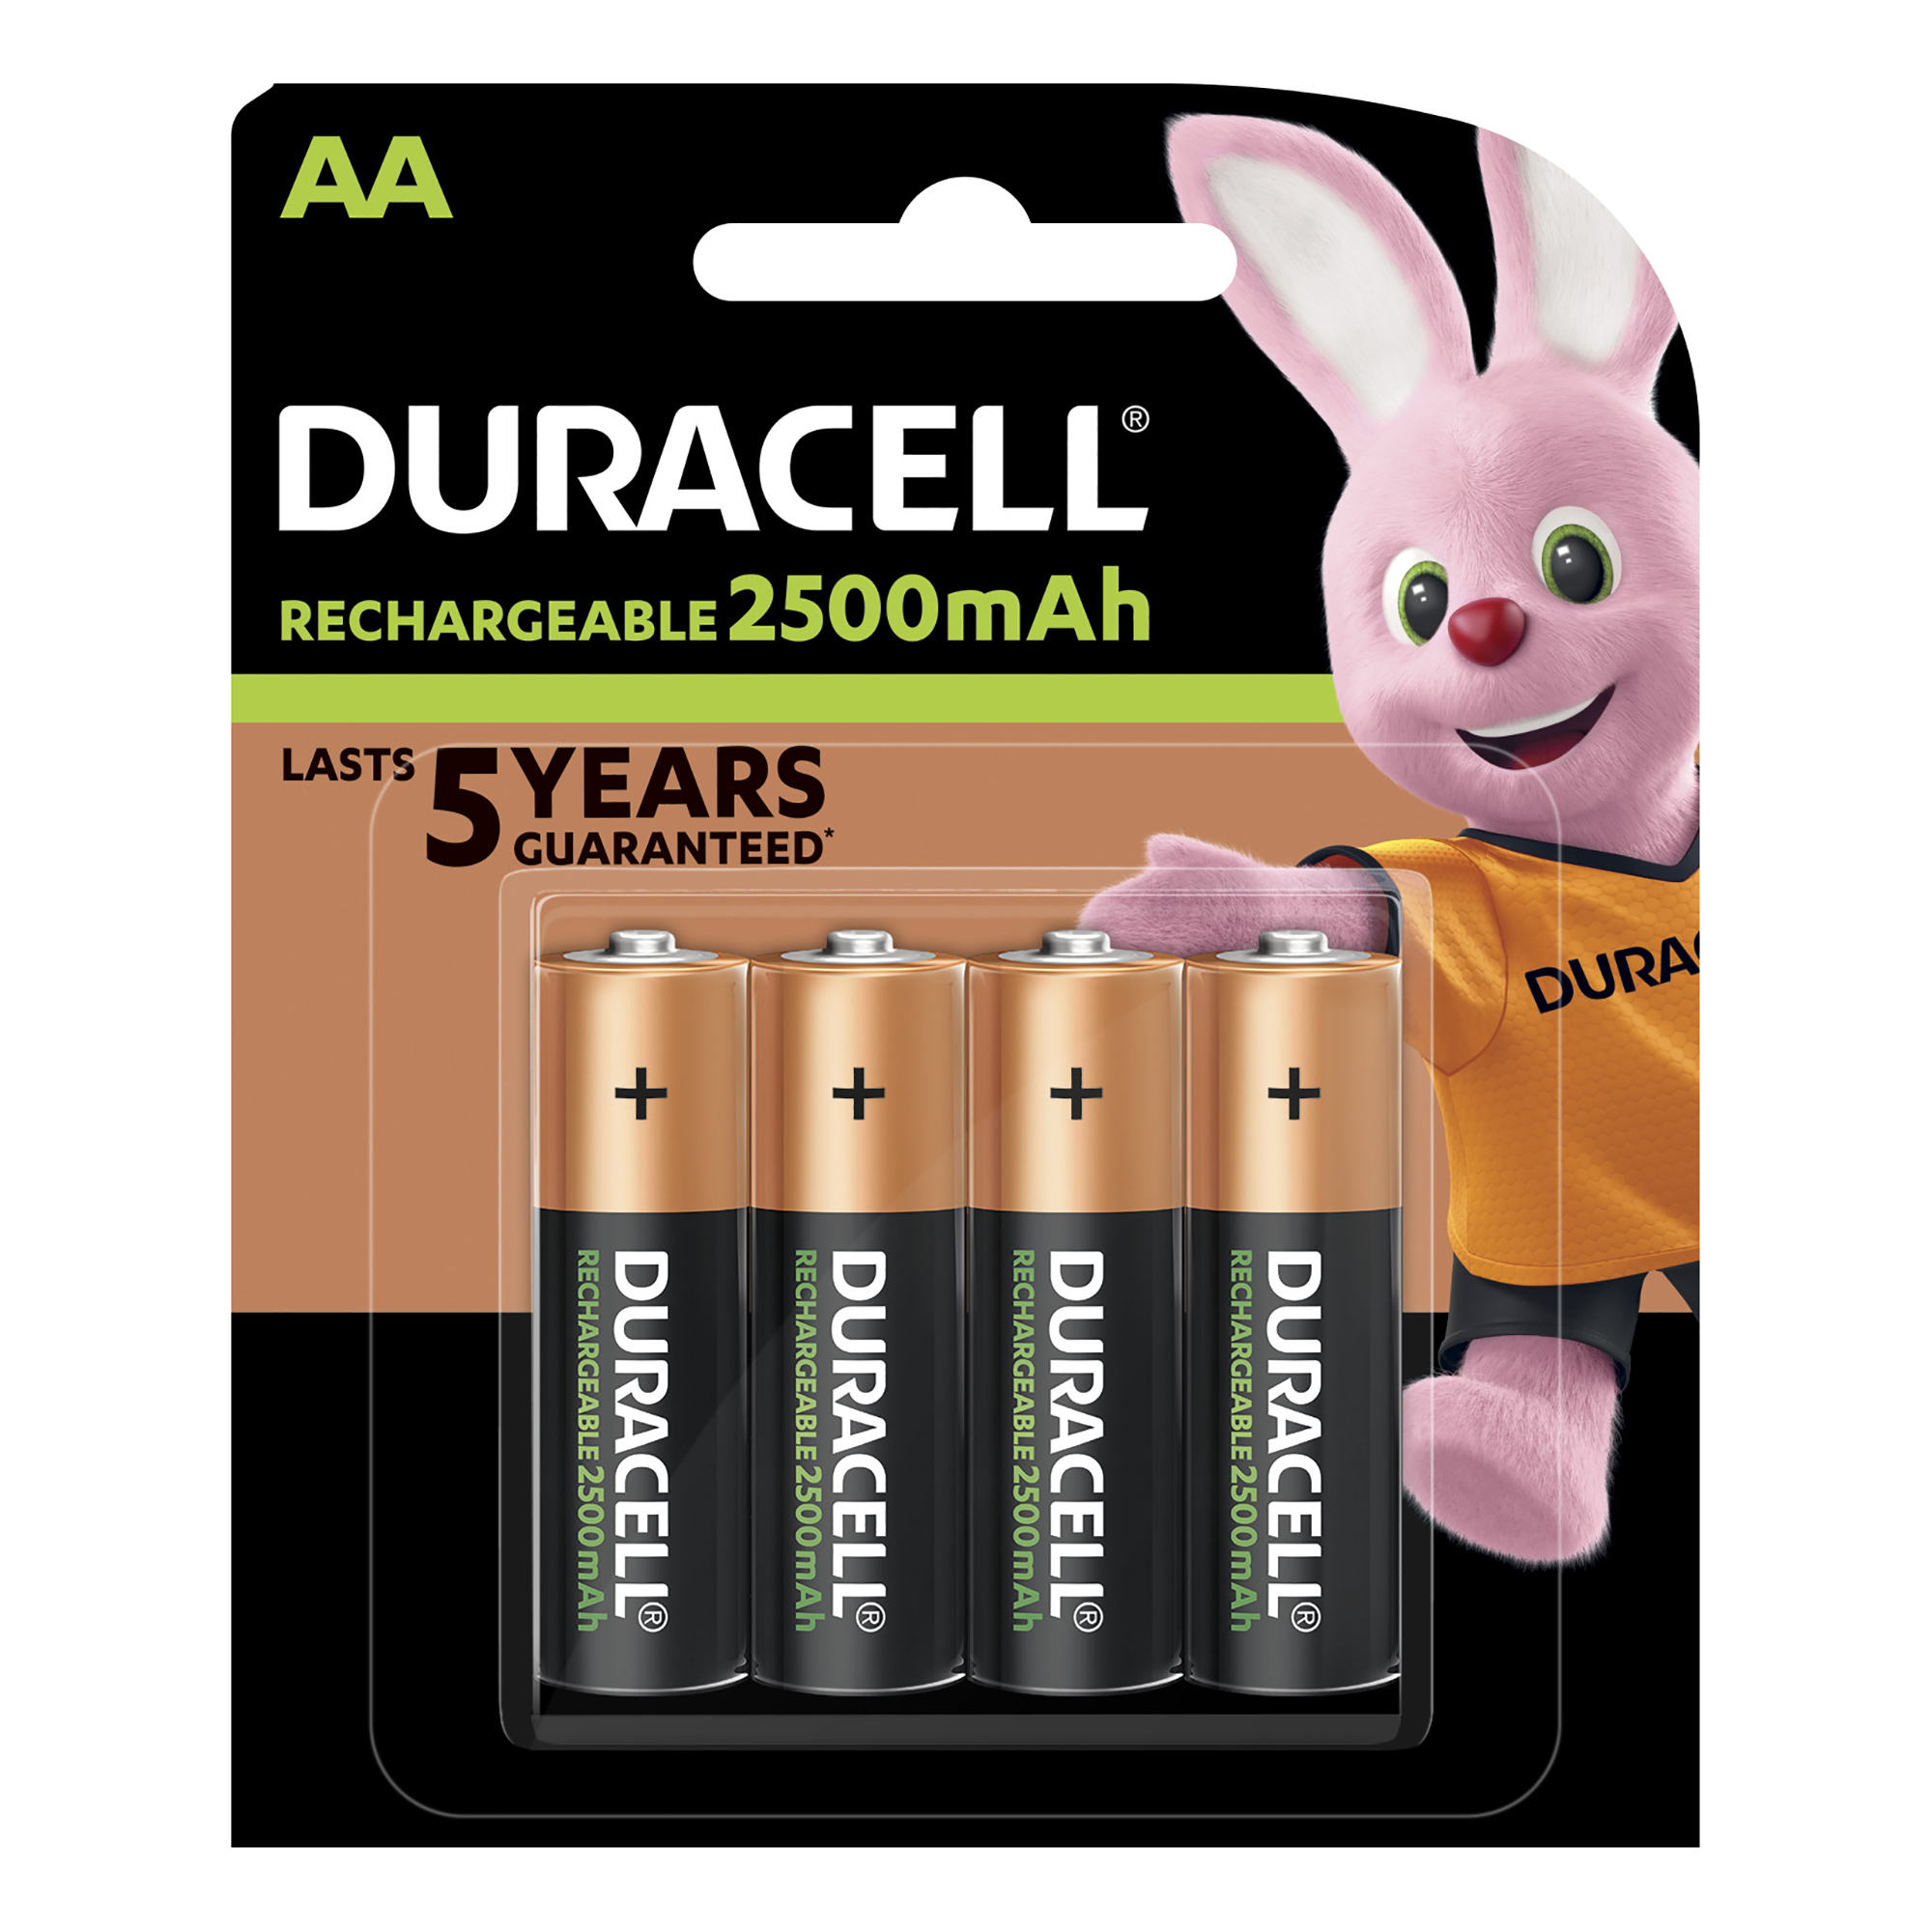 AA Duracell Stay Charged Battery Long-life Rechargeable 2500mAh AA Size 1.2V Ref 81418237 Pack 4